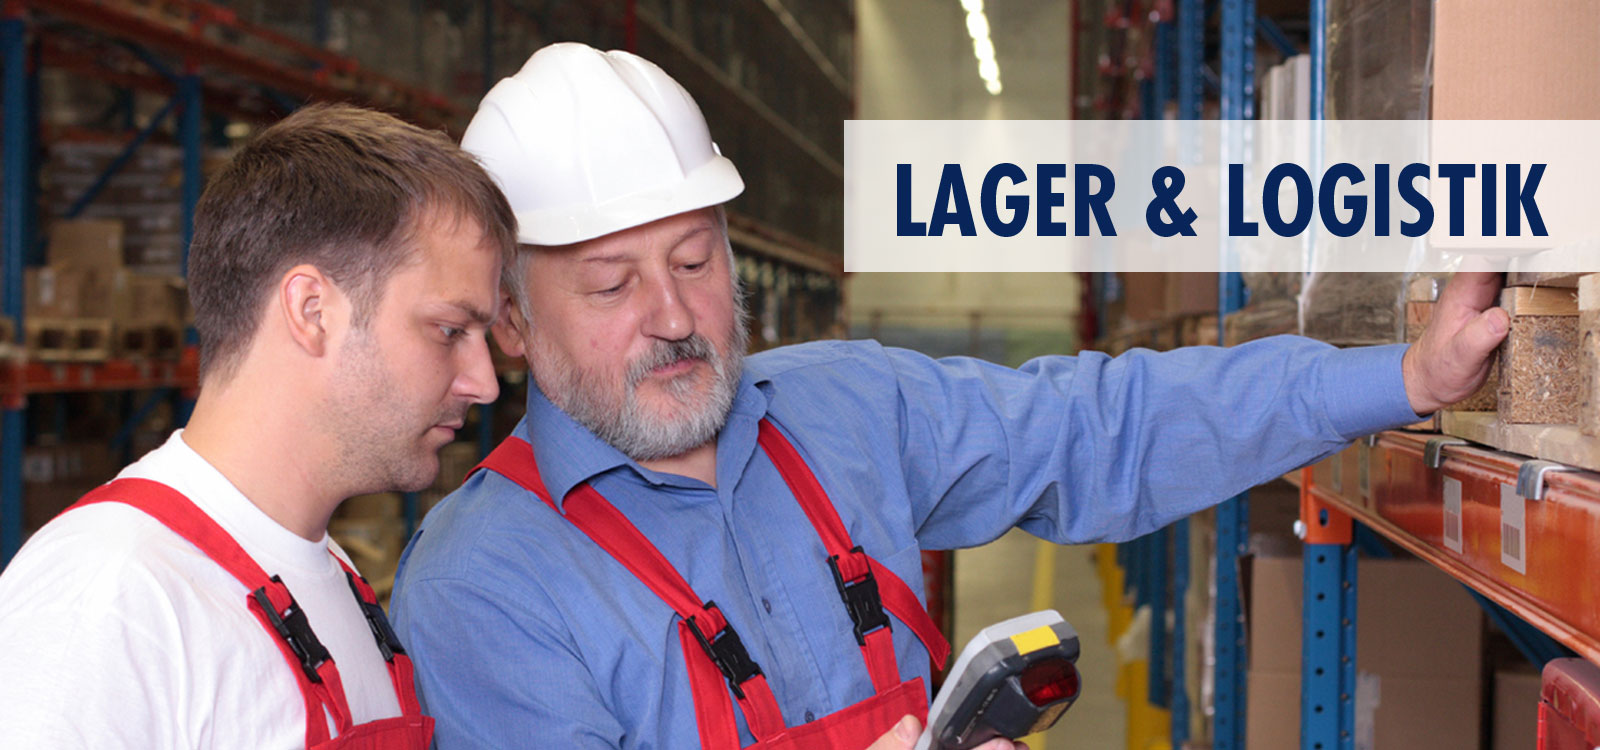 lager_text